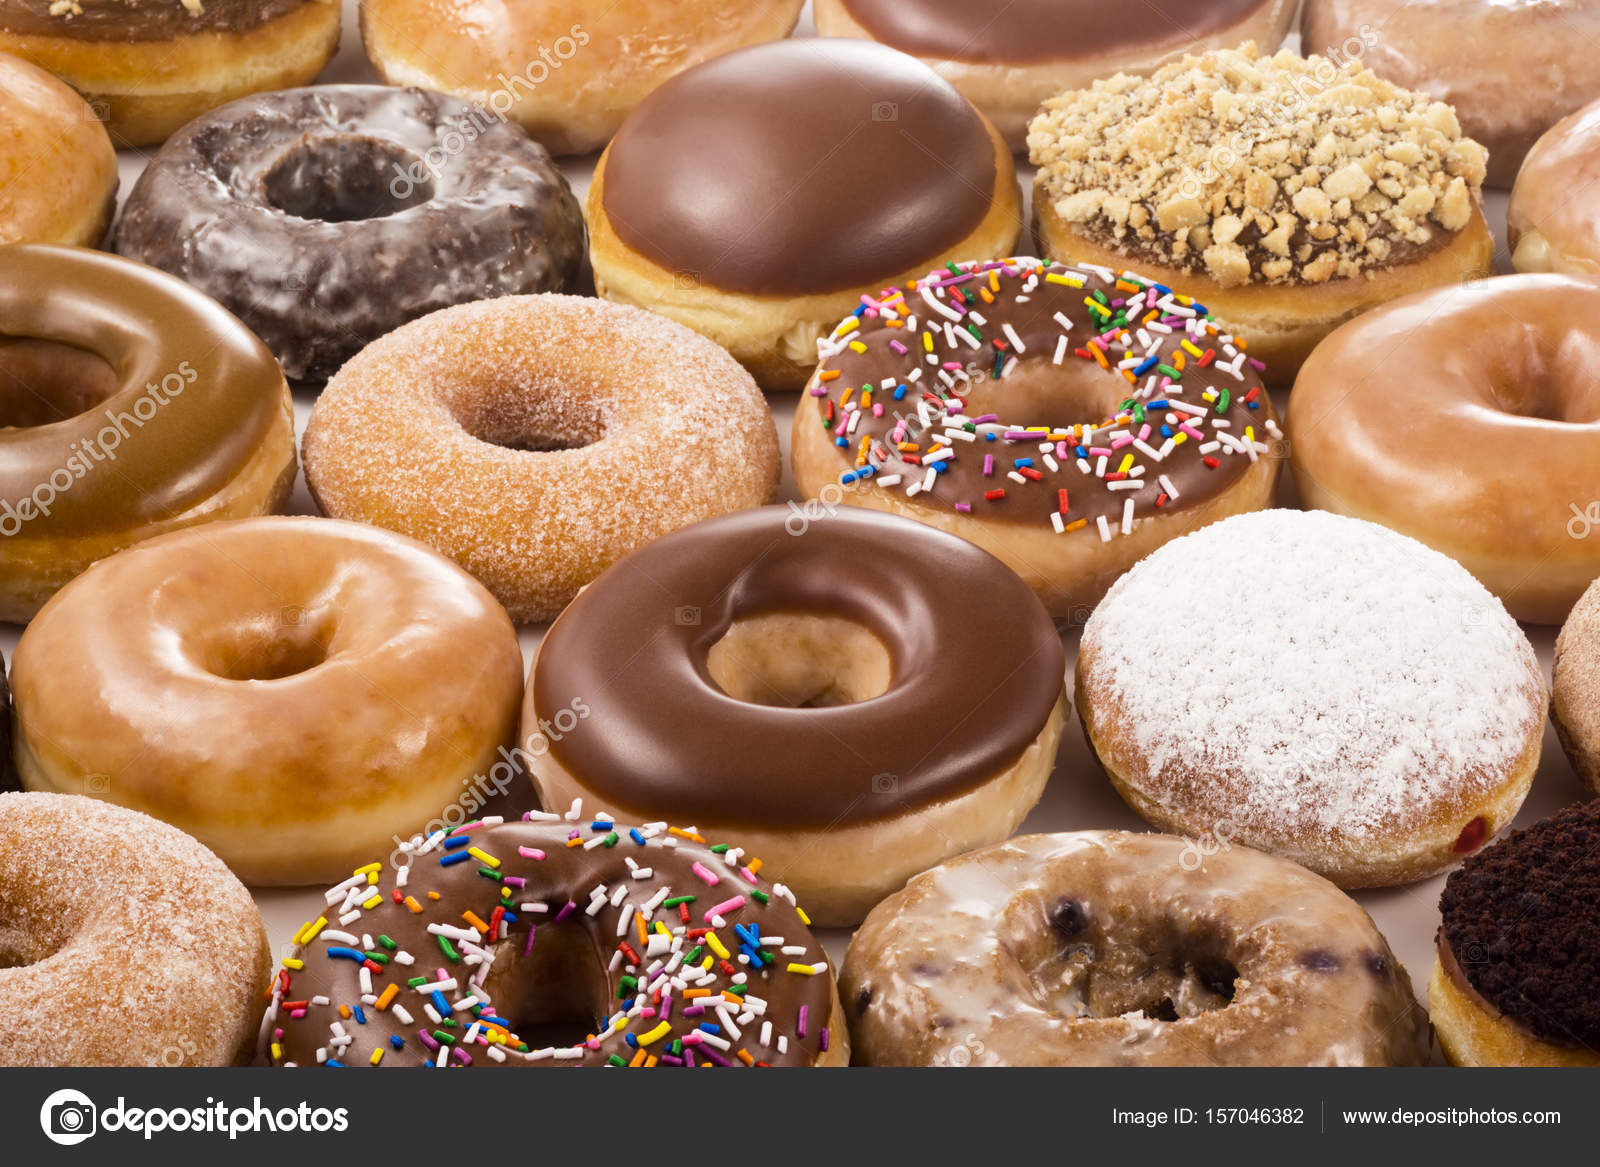 Background Of Different Types And Flavors Of Donuts